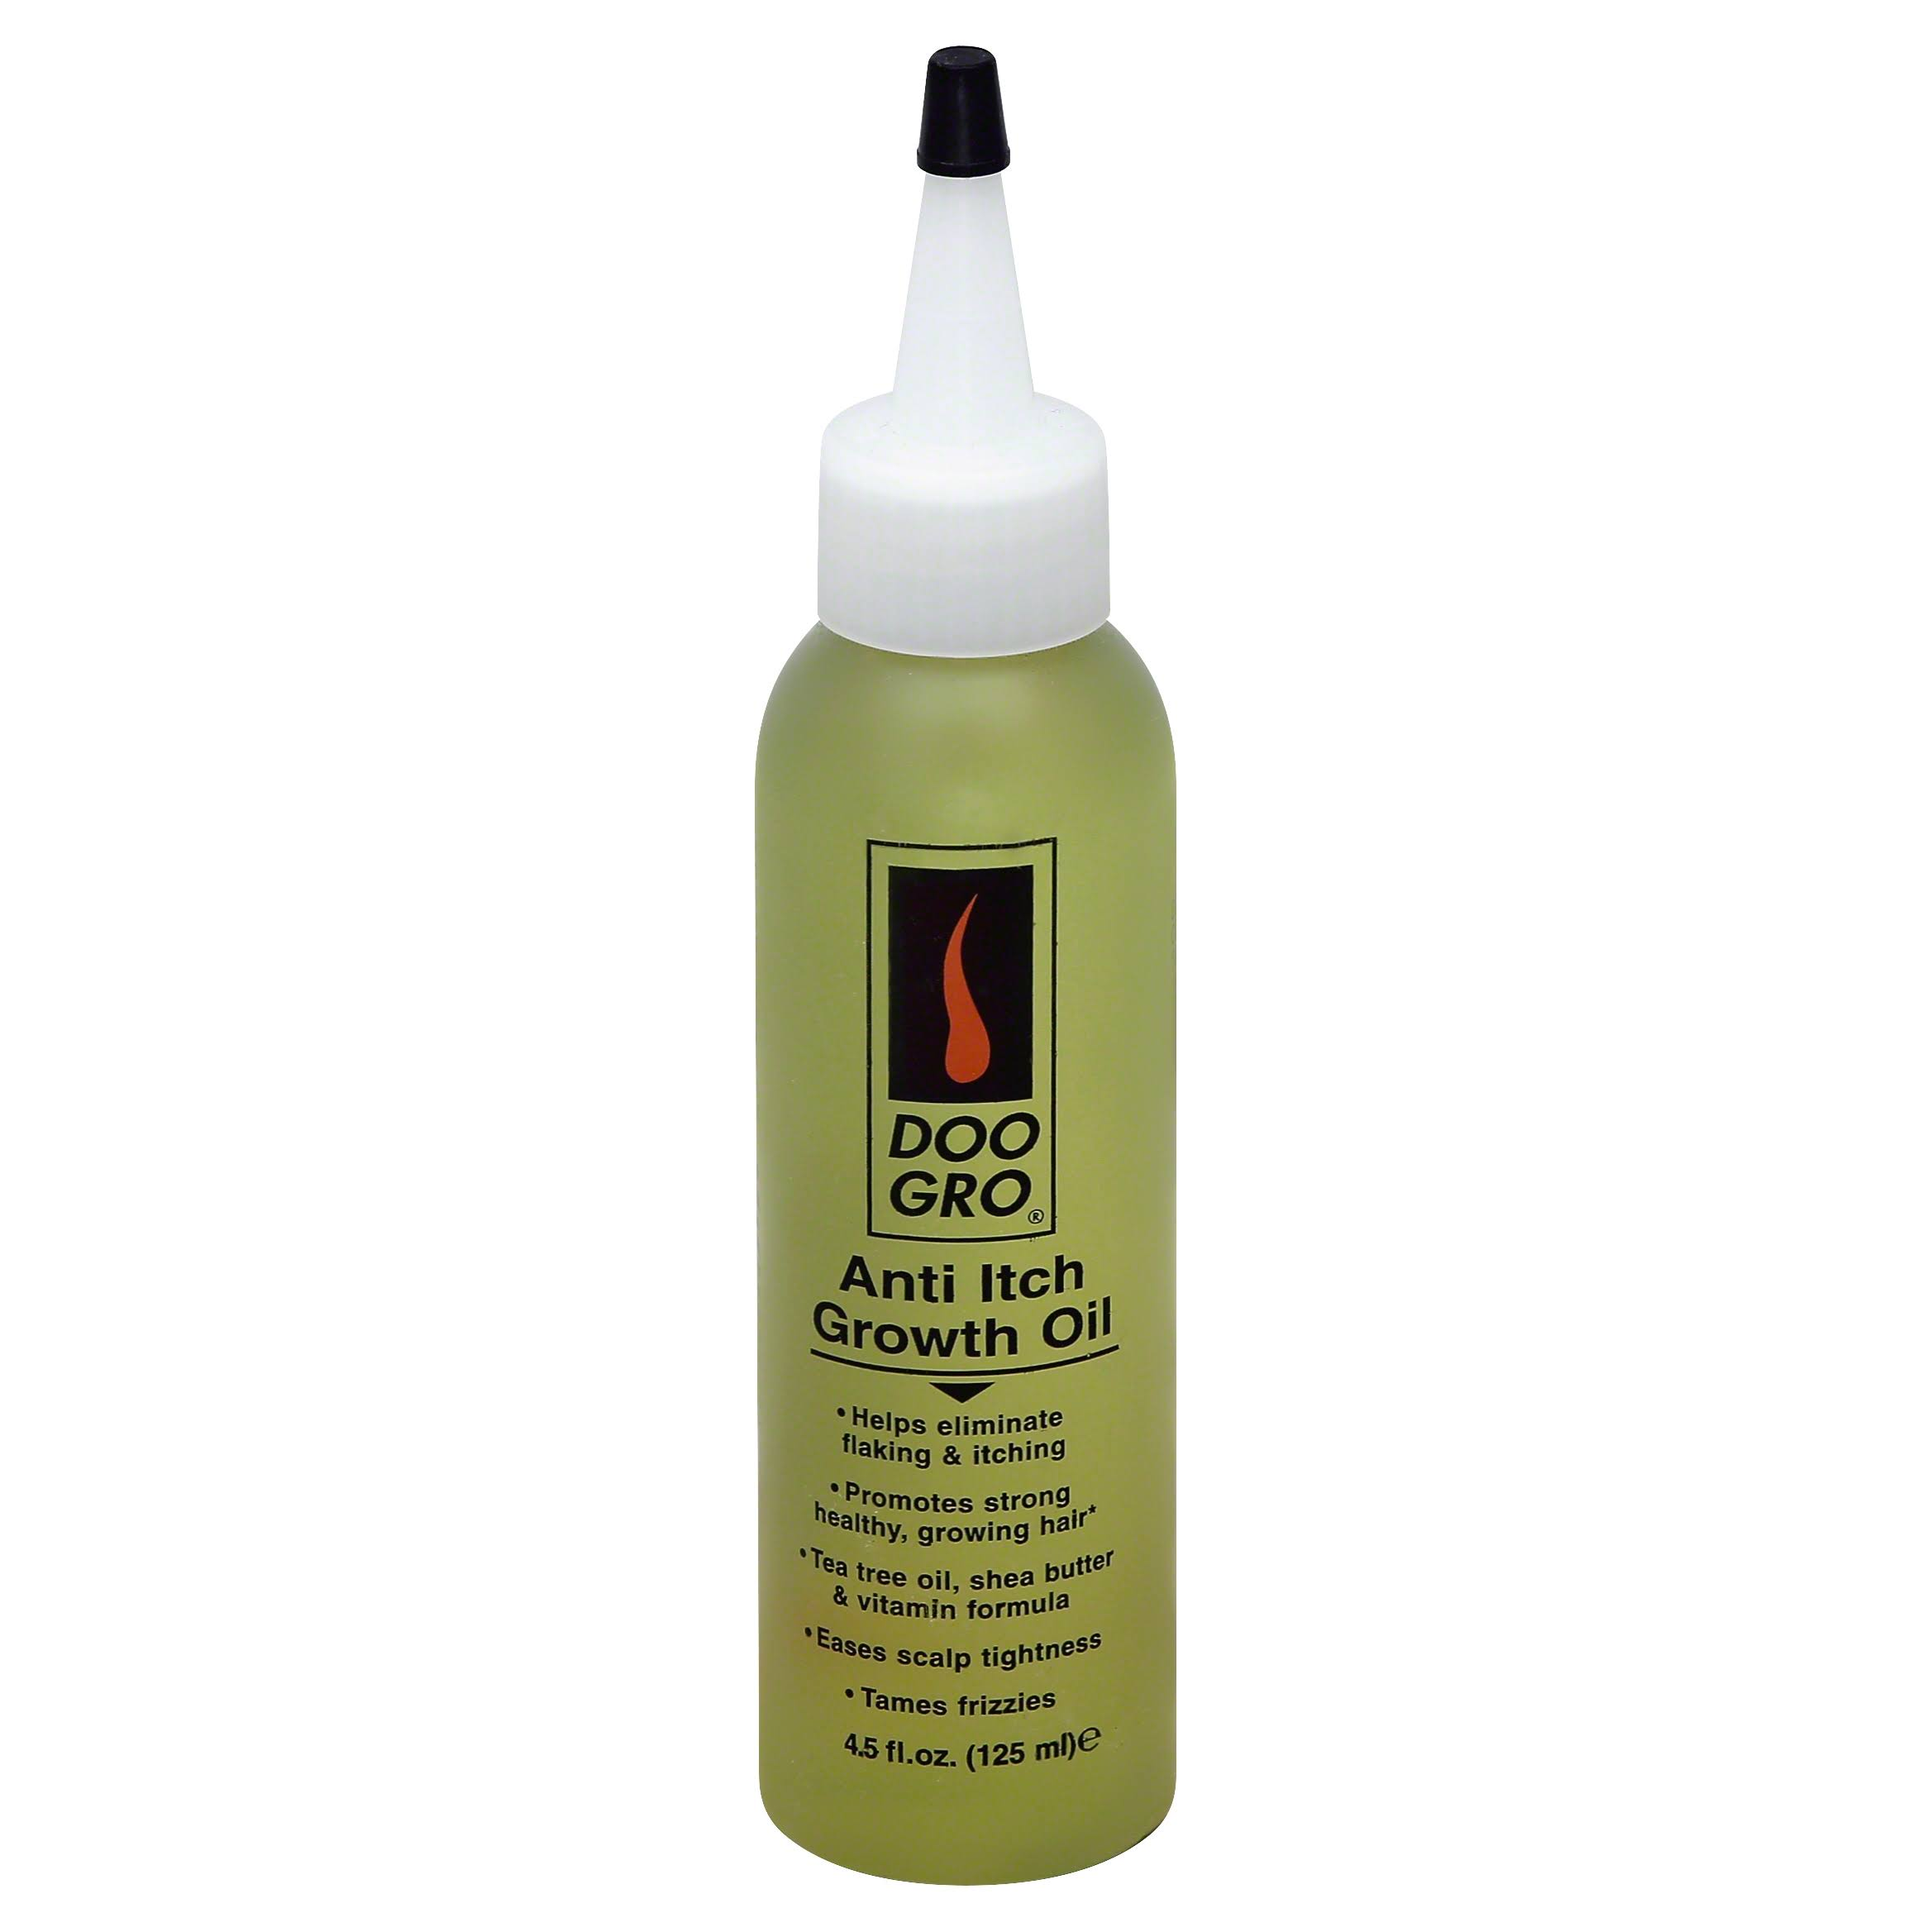 Doo Gro Anti Itch Growth Oil - 4.5oz